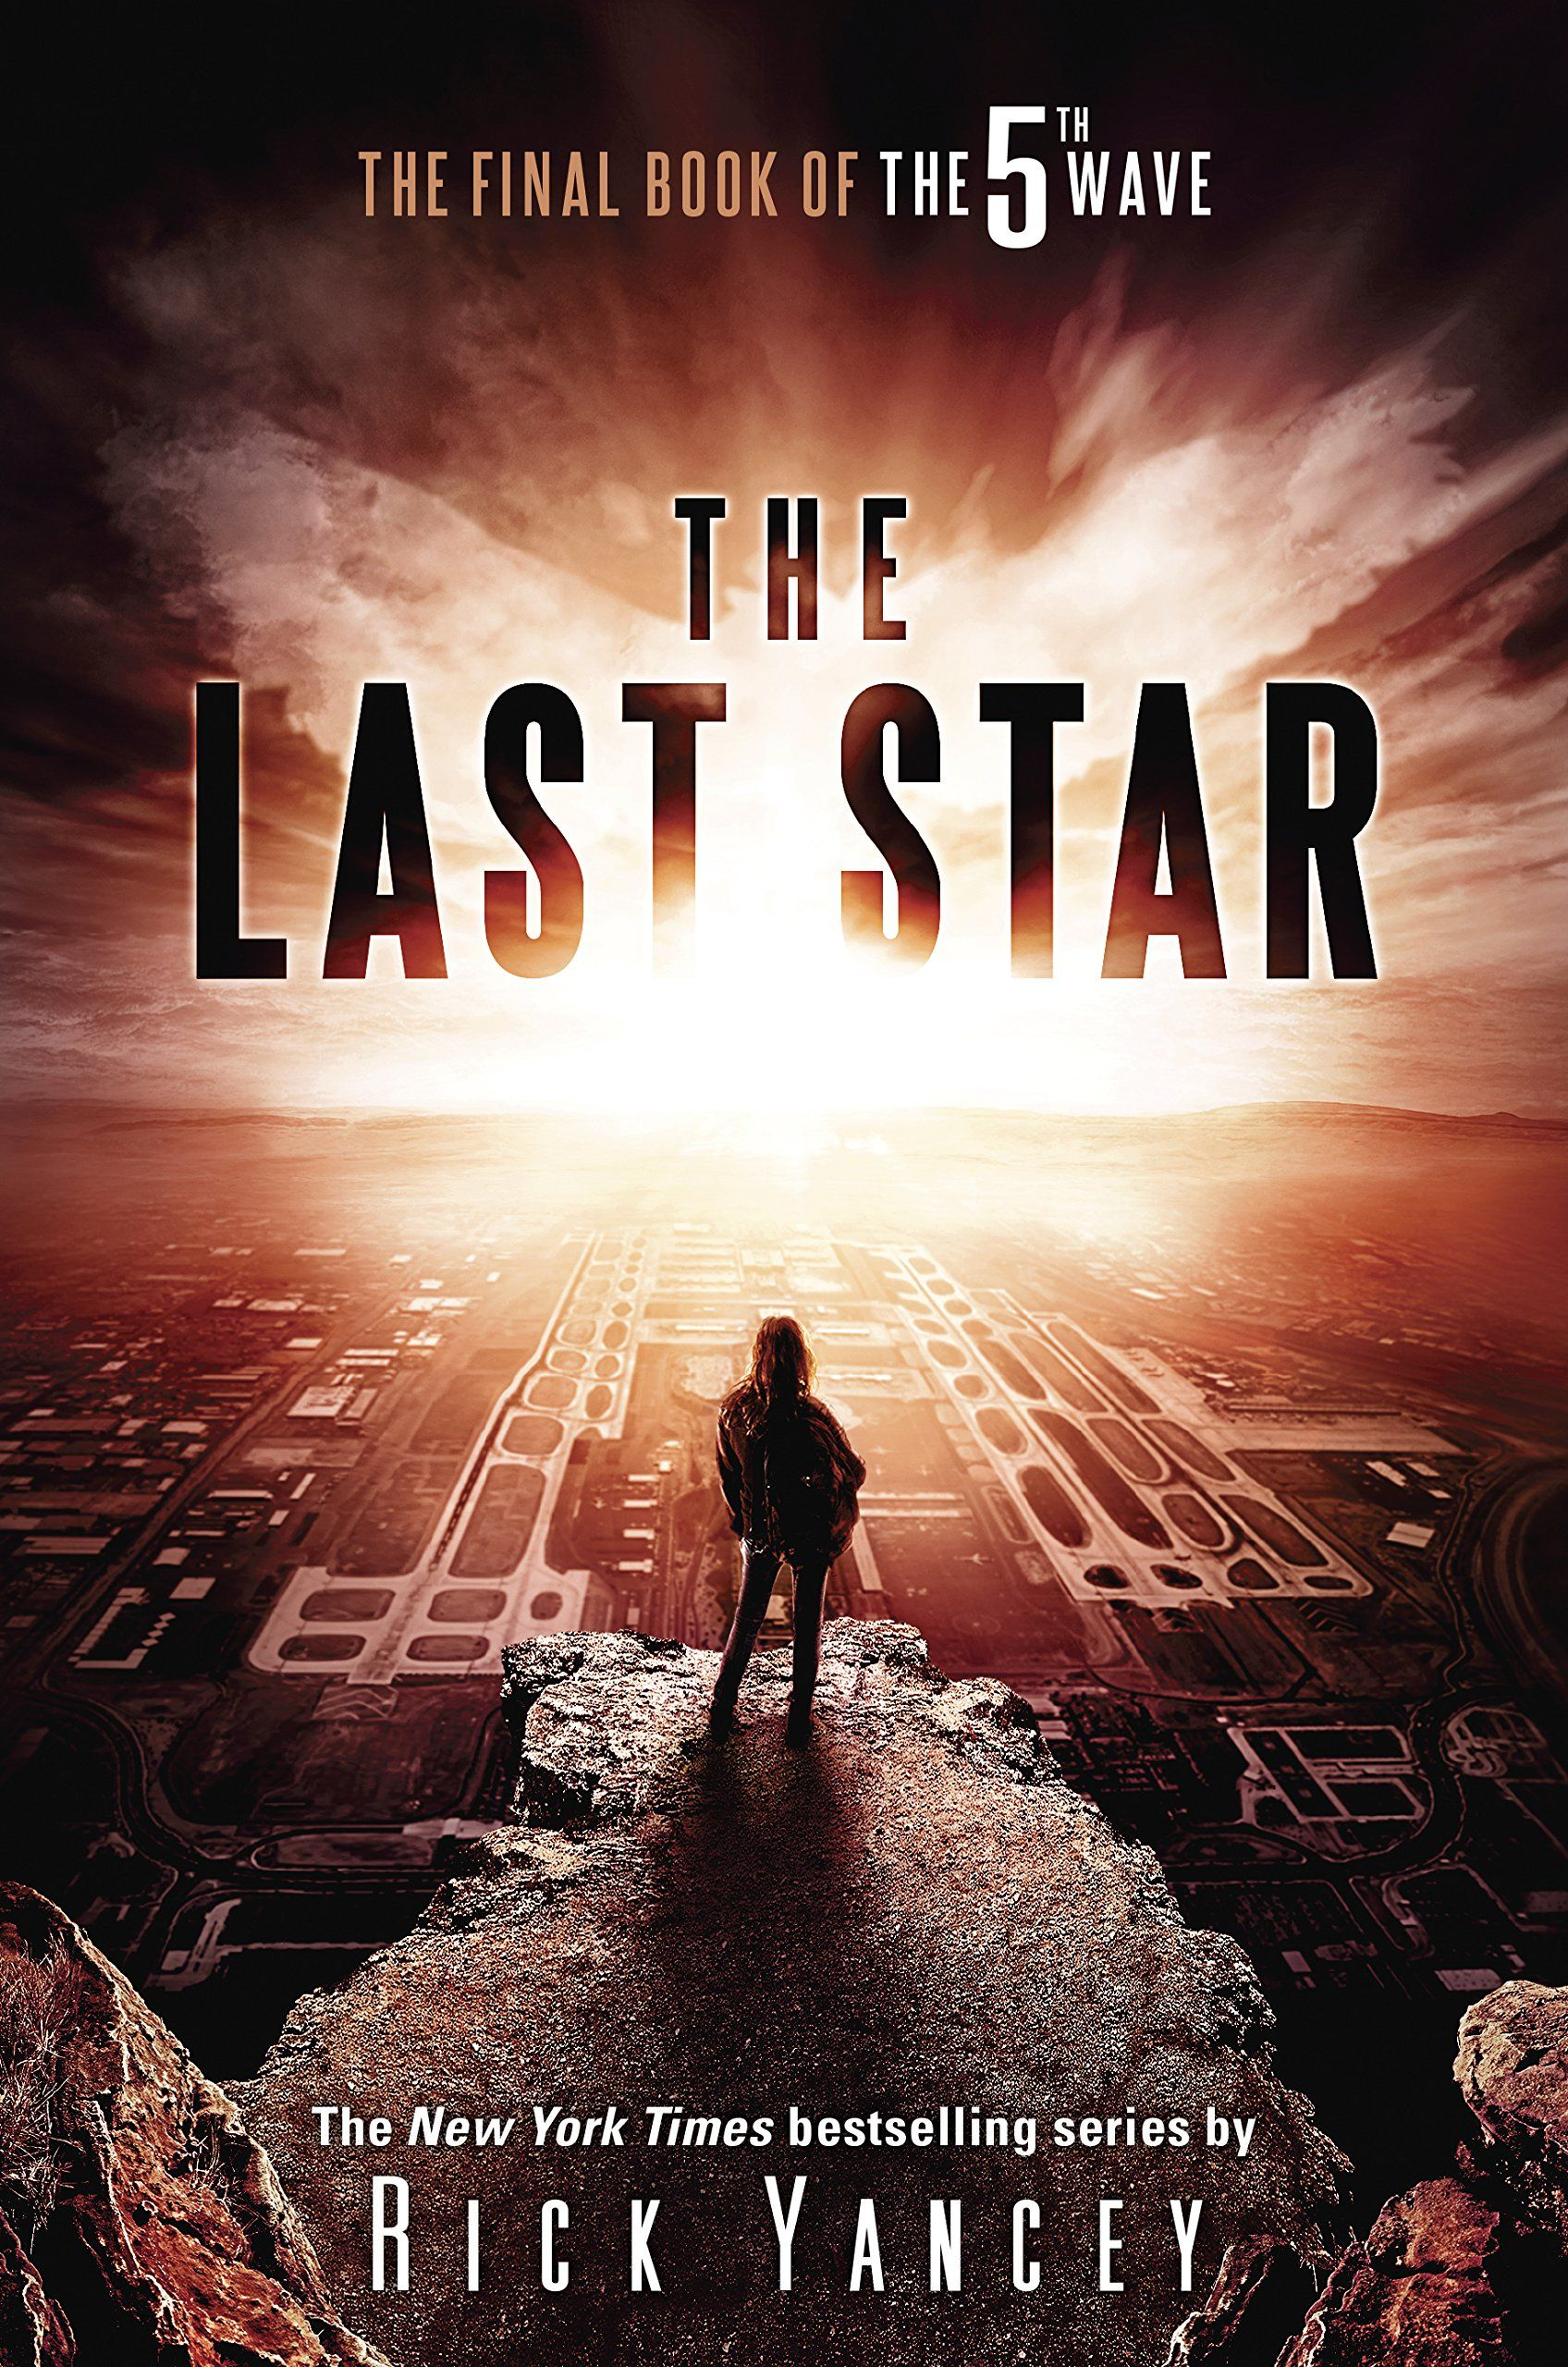 Como Descargar Libros En Goodreads The Last Star Rick Yancey Https Goodreads Book Show